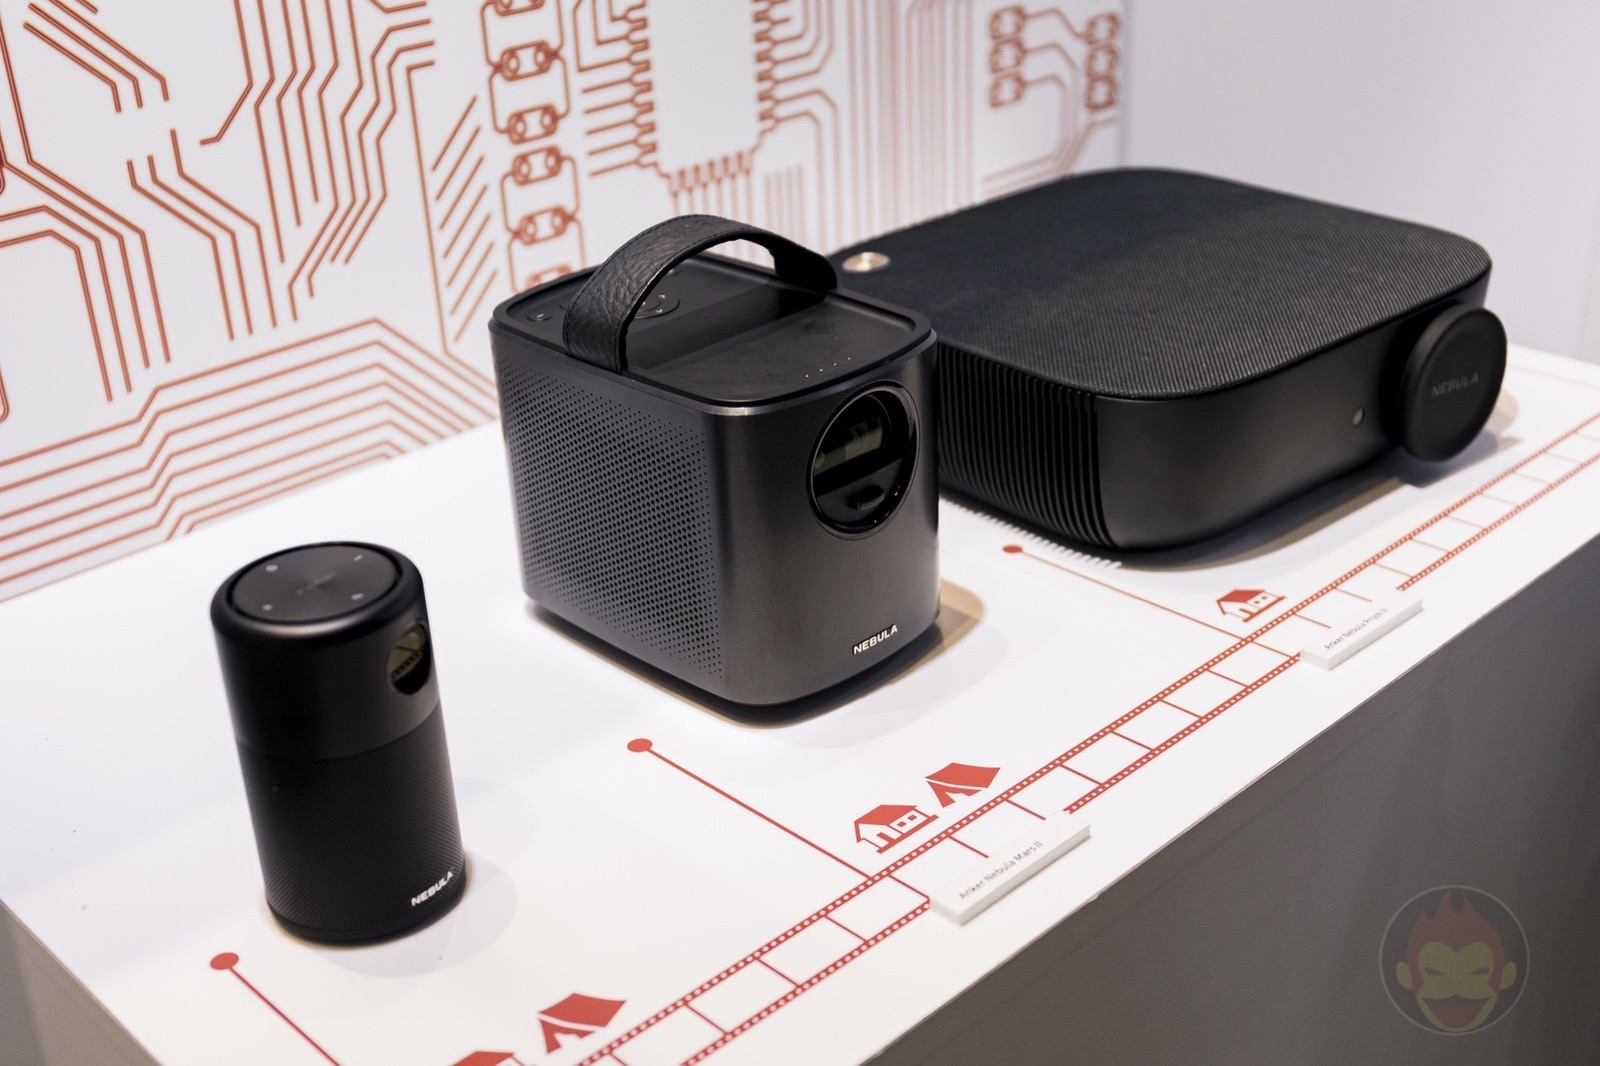 Anker-Power-Conference-19-Summer-New-Products-and-services-07.jpg